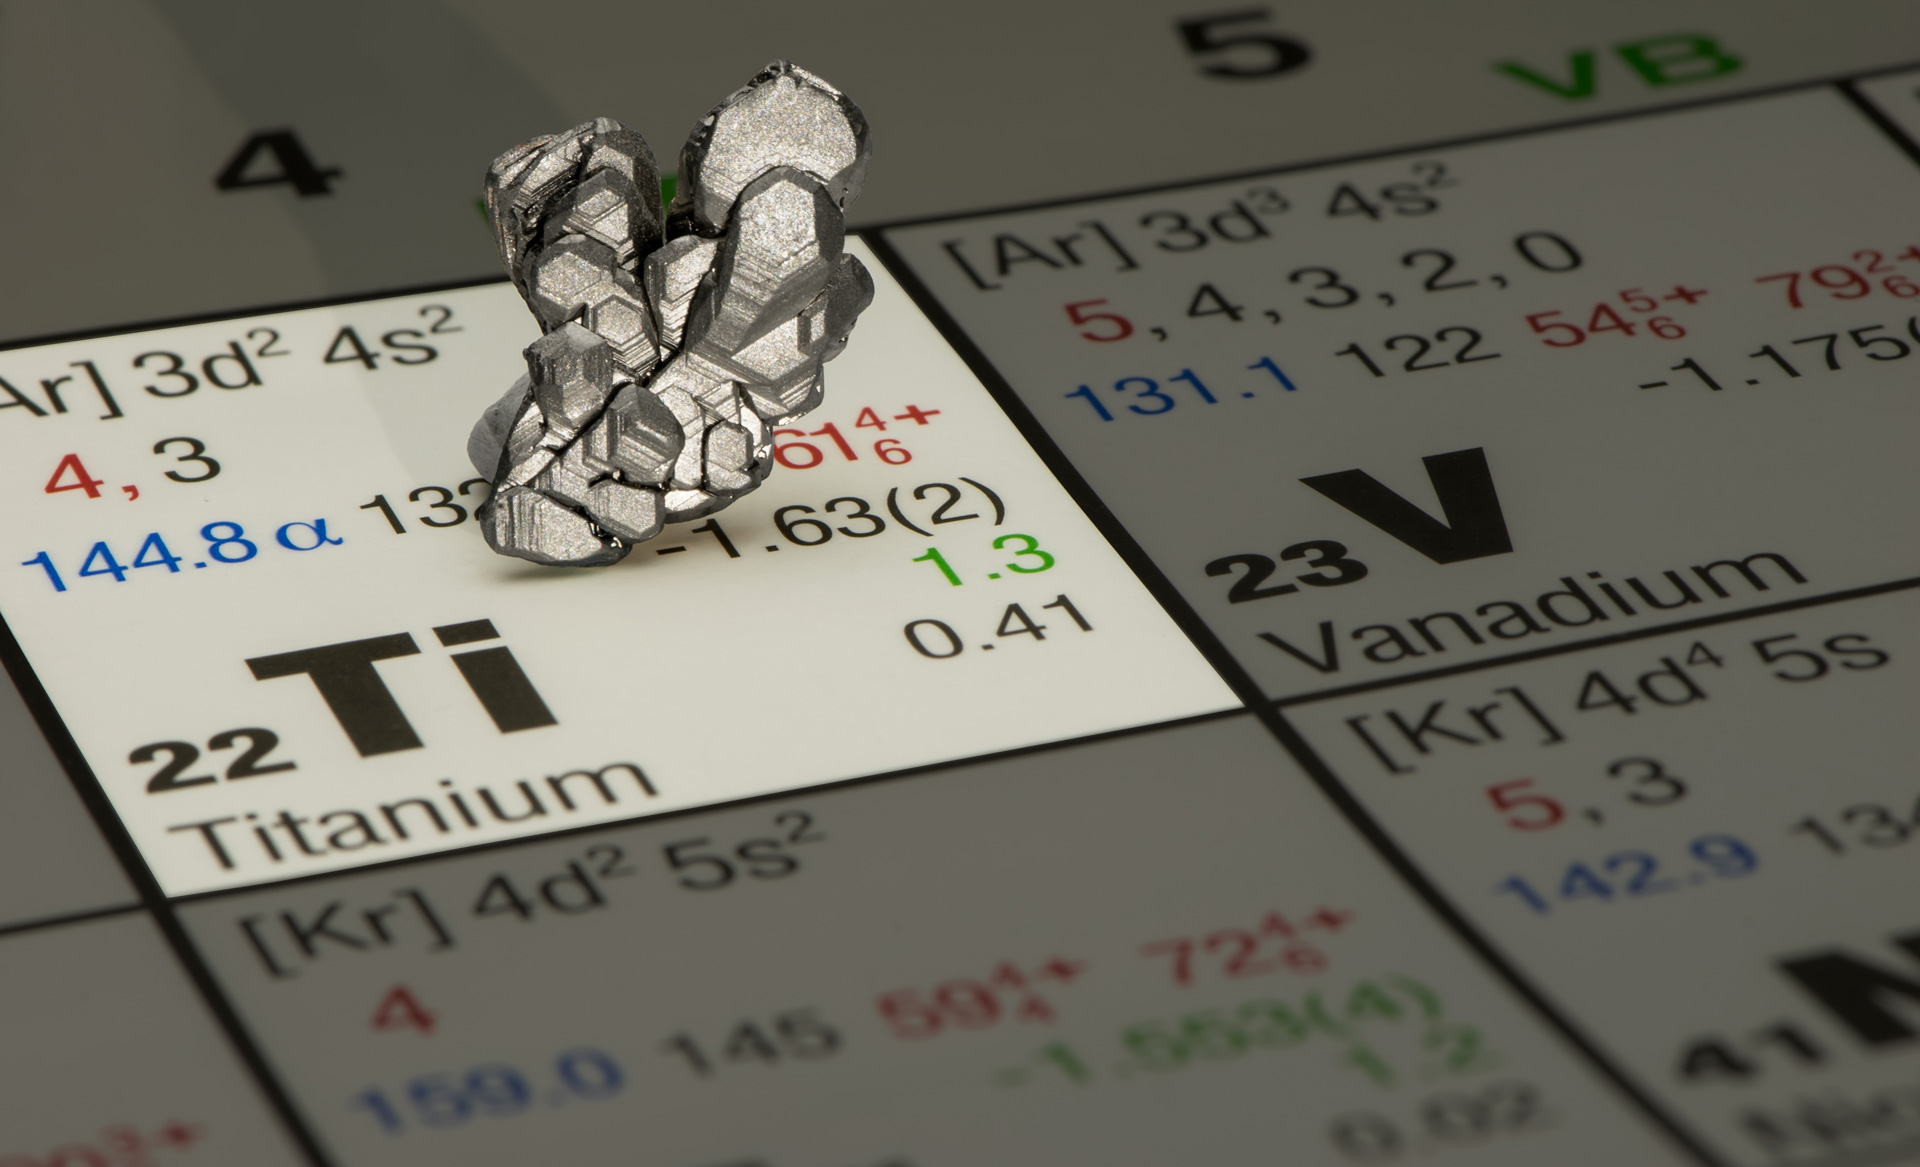 Up to 50% energy saving confirmed by subsequent titanium metal production